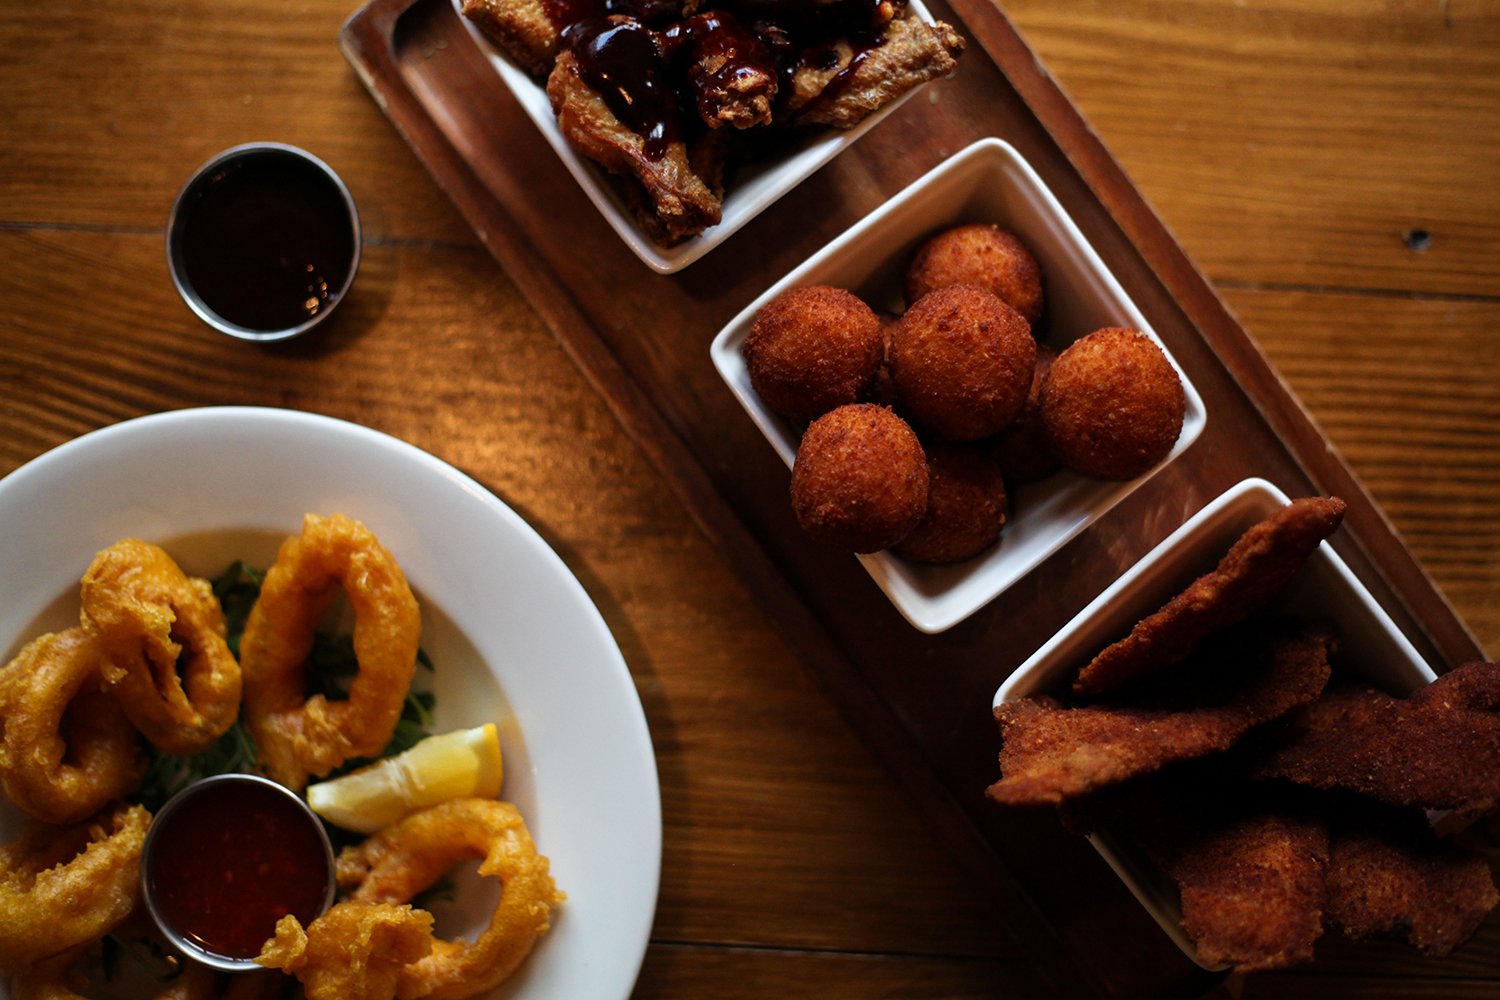 Fried Onion Rings and Croquetas at The Cowley Retreat